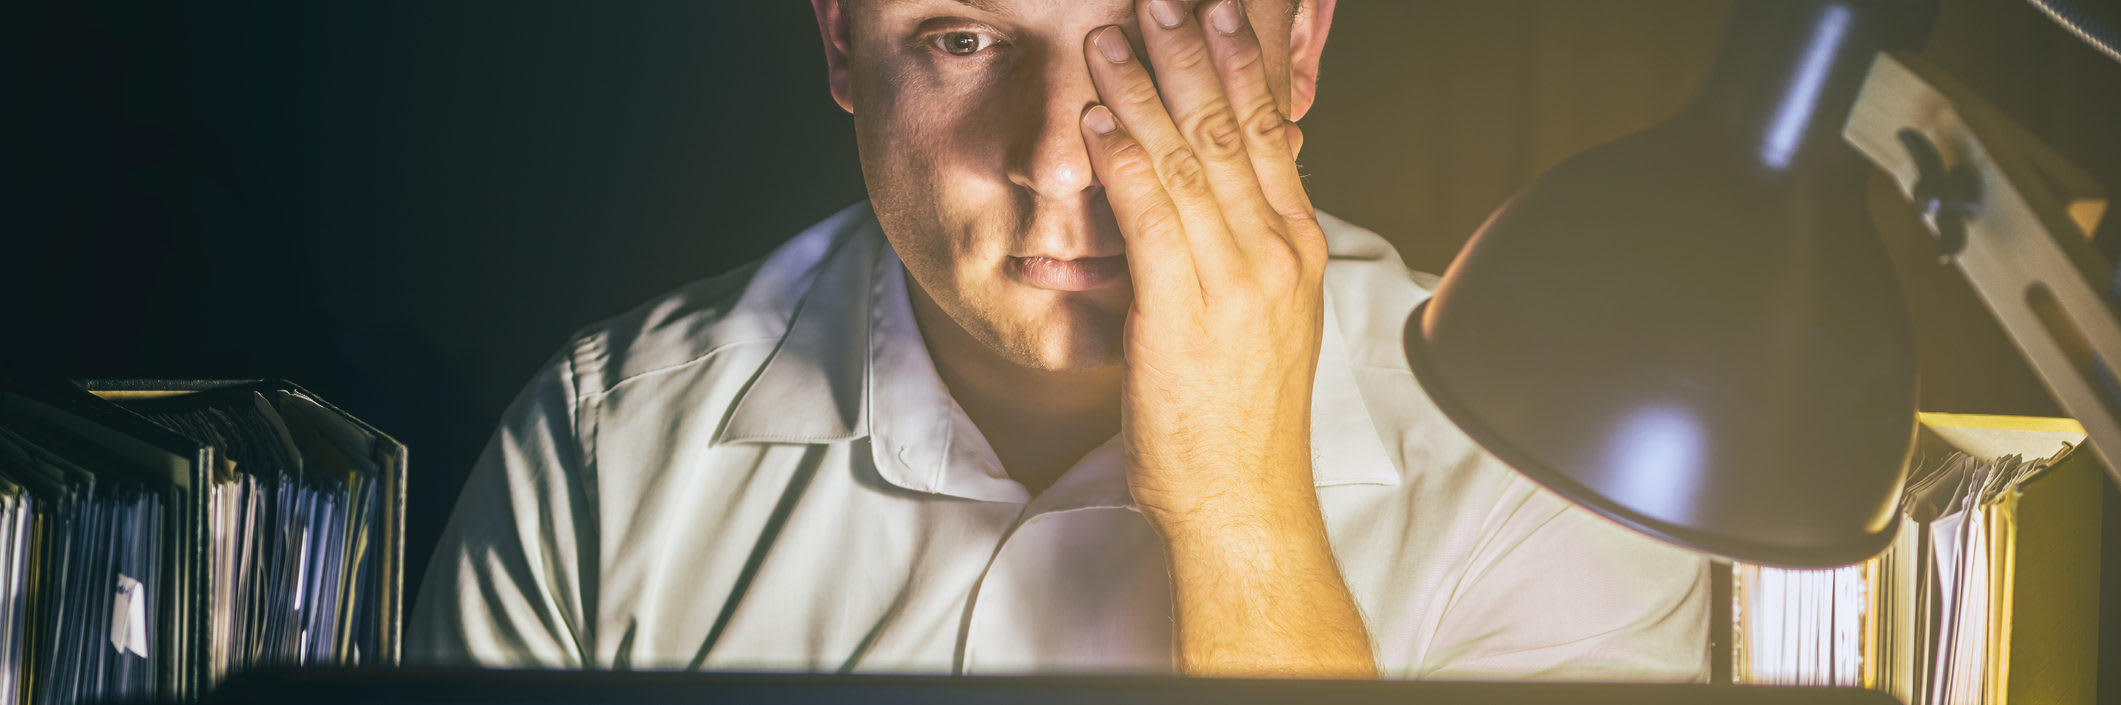 main image - Man with tired eyes due to too much work on the computer screen